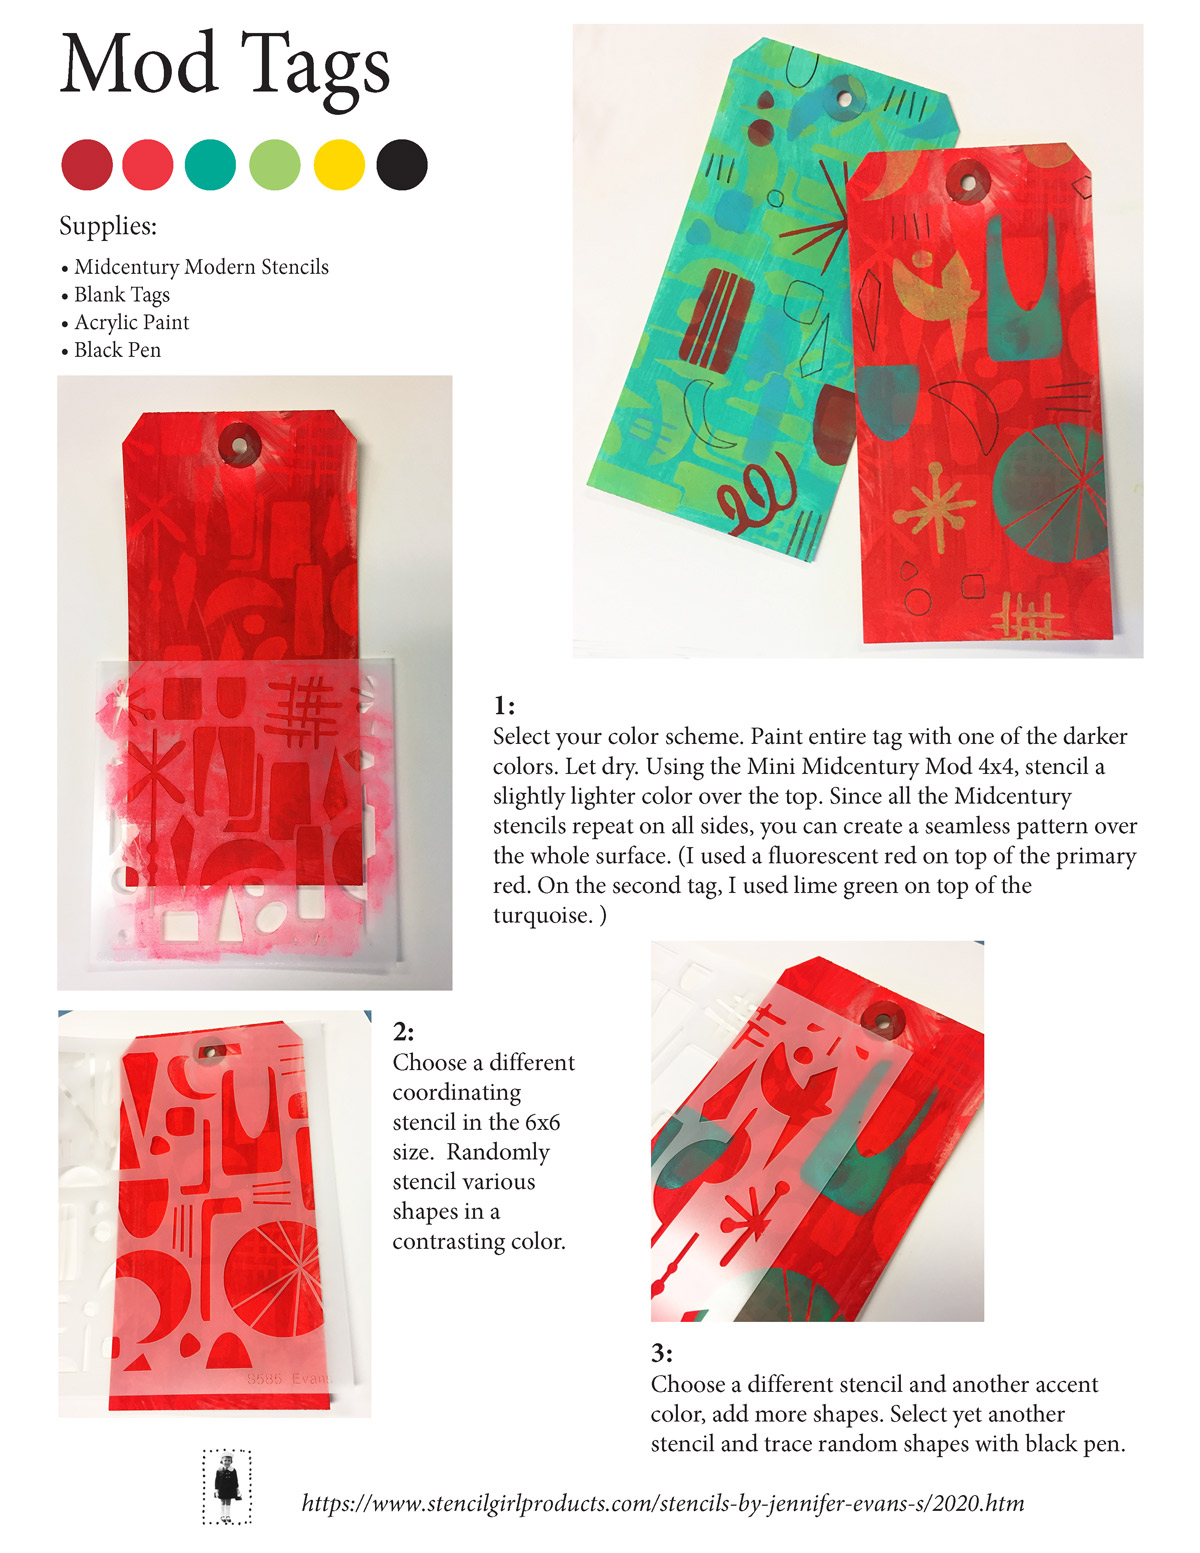 Mod Tags with Stencils and Paint - Tutorial by Jennifer Evans